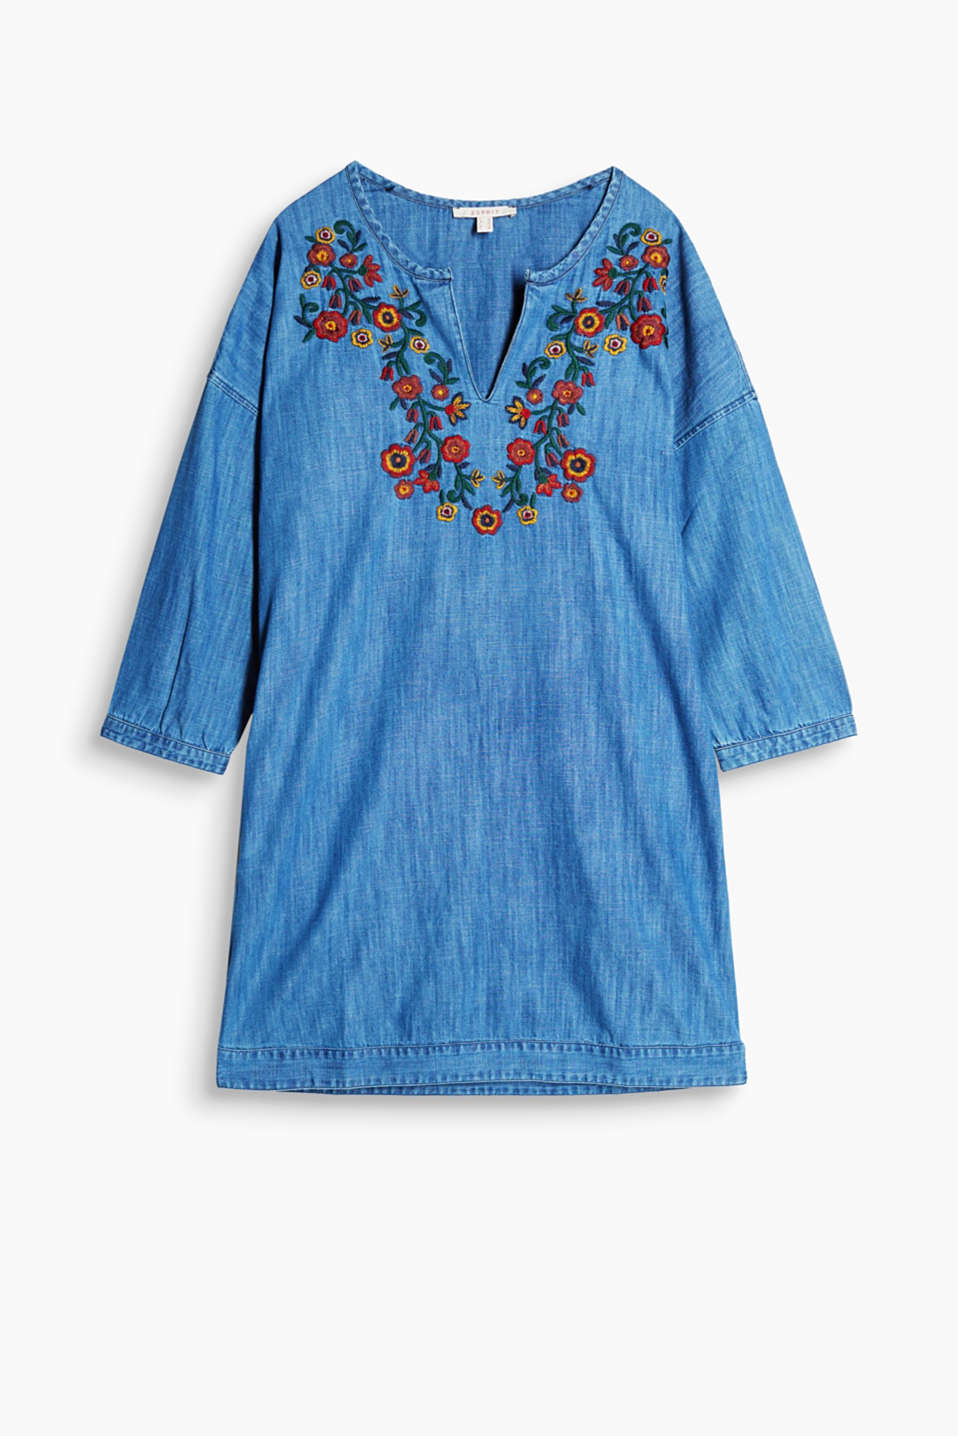 Denim dress in a tunic design with three-quarter length sleeves with colourful floral embroidery